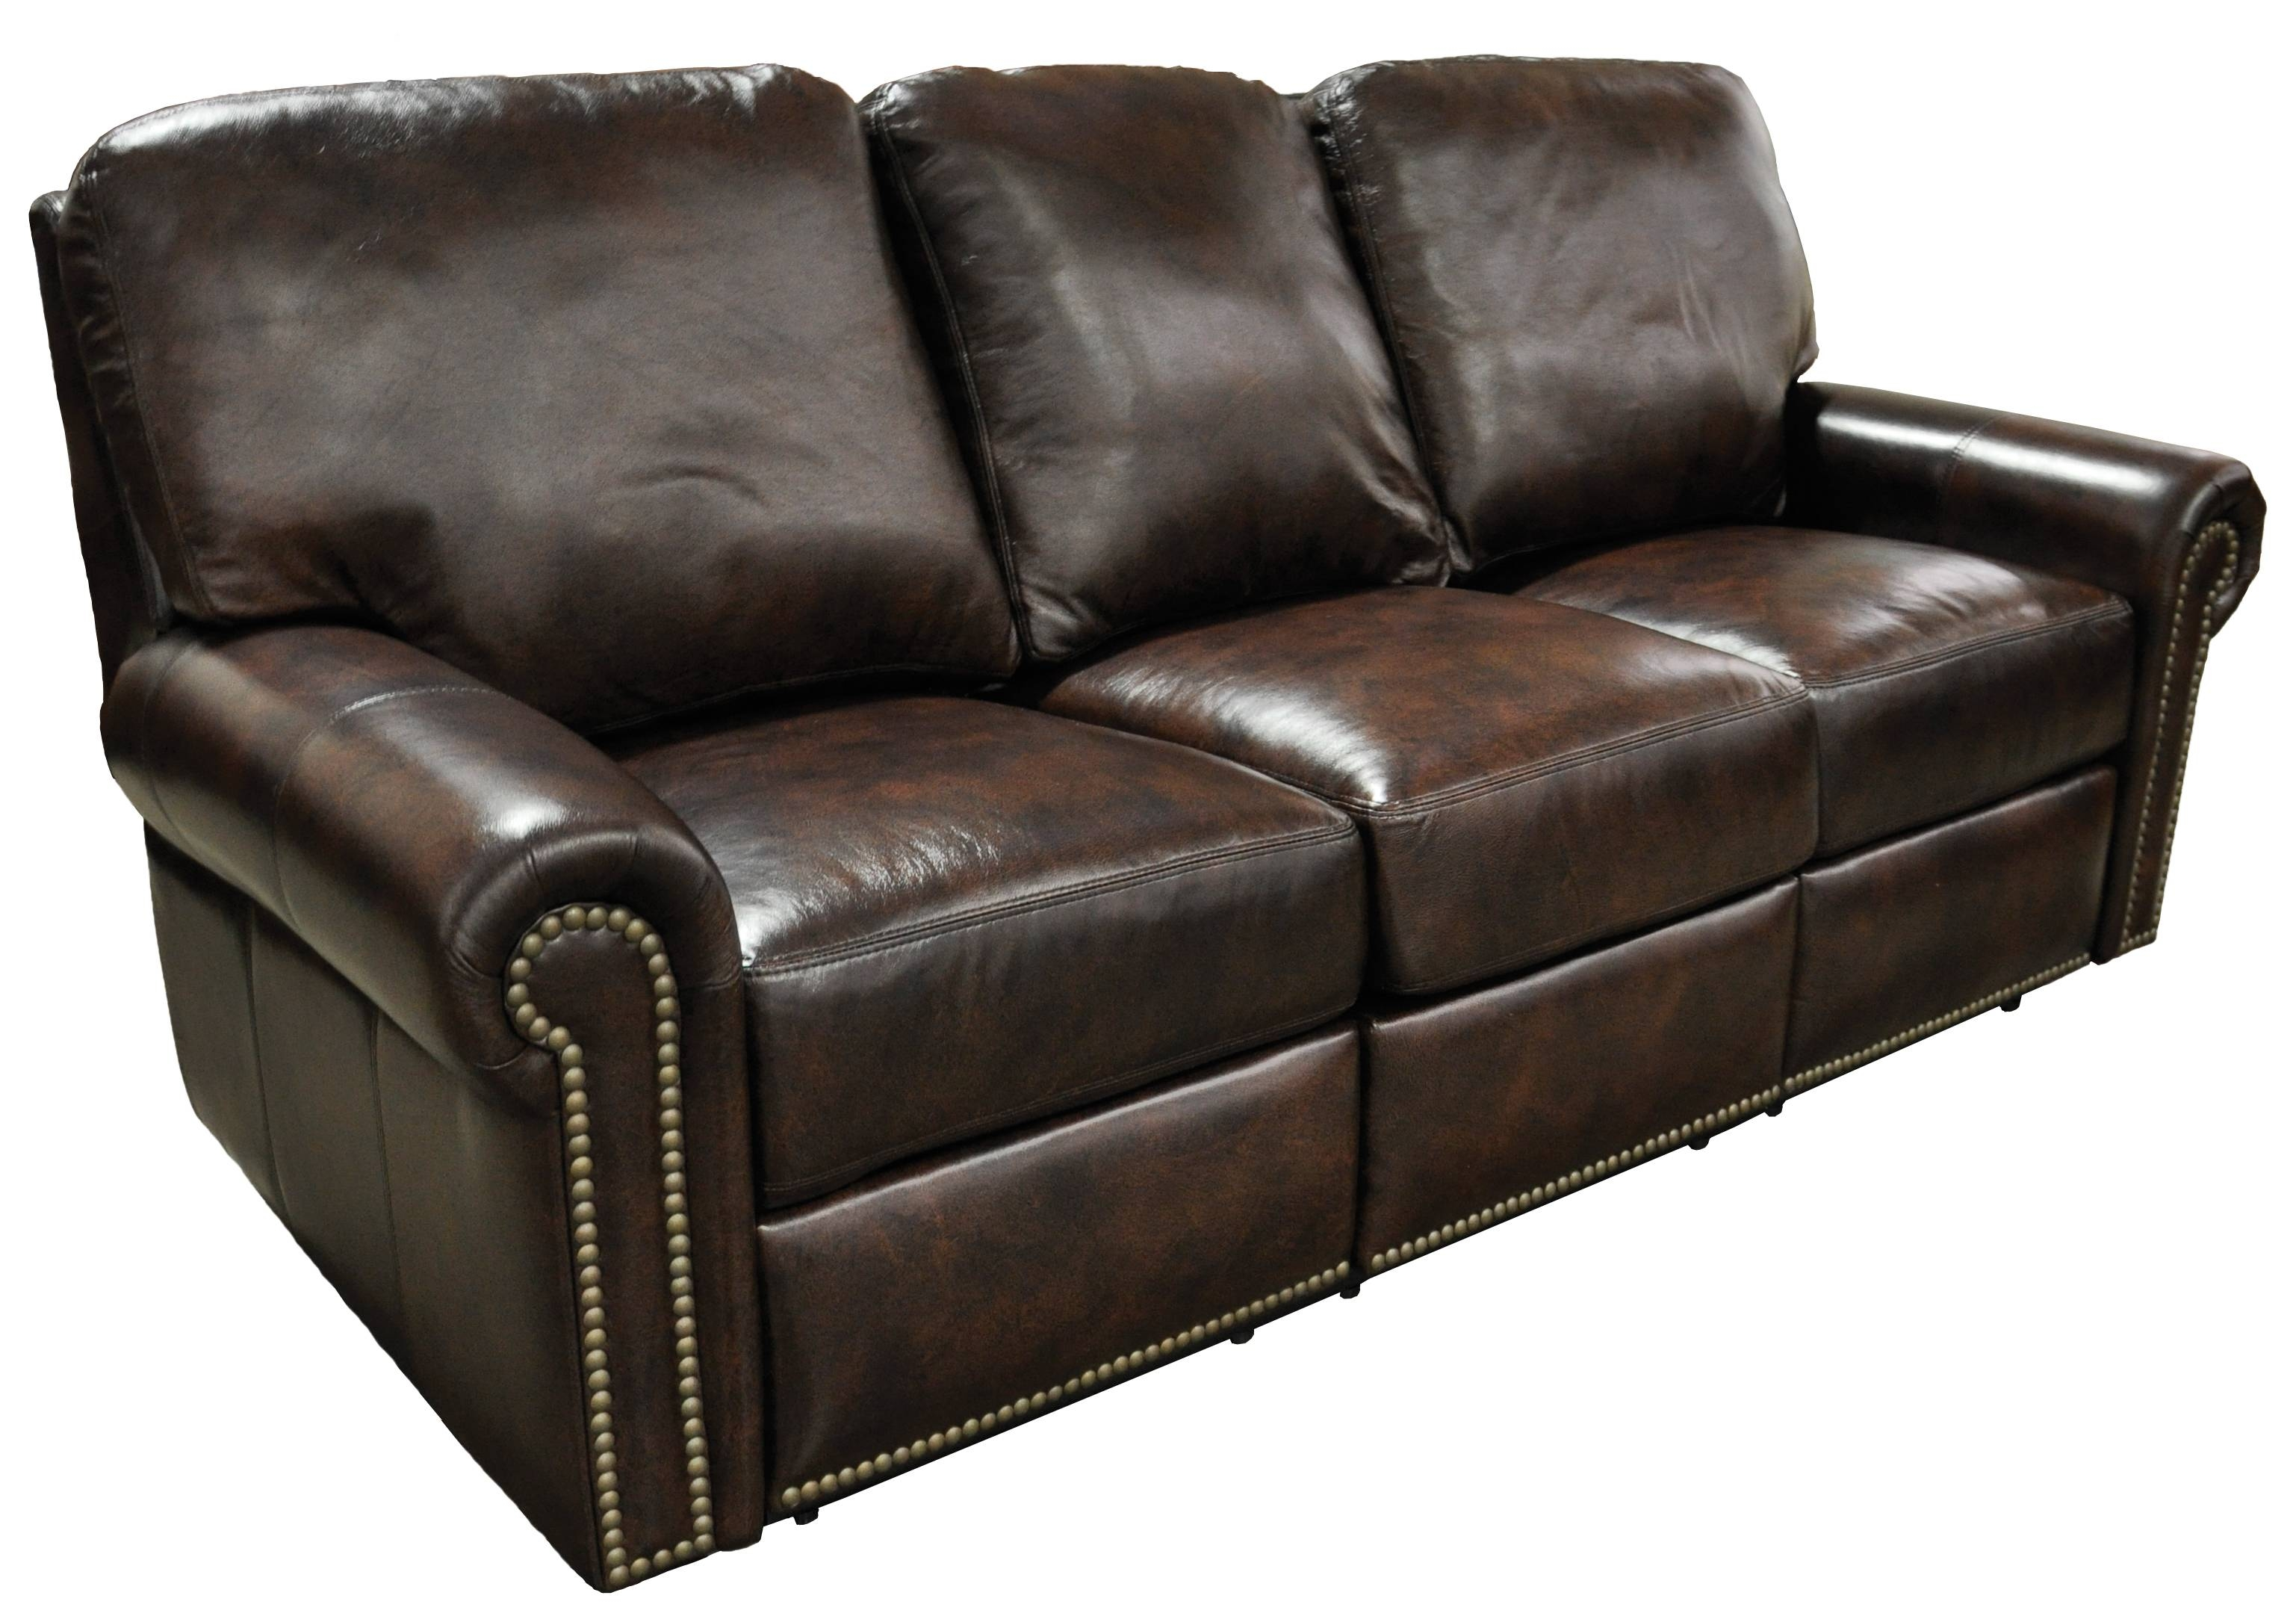 Furniture: Leather Reclining Couch | Flexsteel Sofa | Chesterfield throughout Chesterfield Recliners (Image 13 of 30)